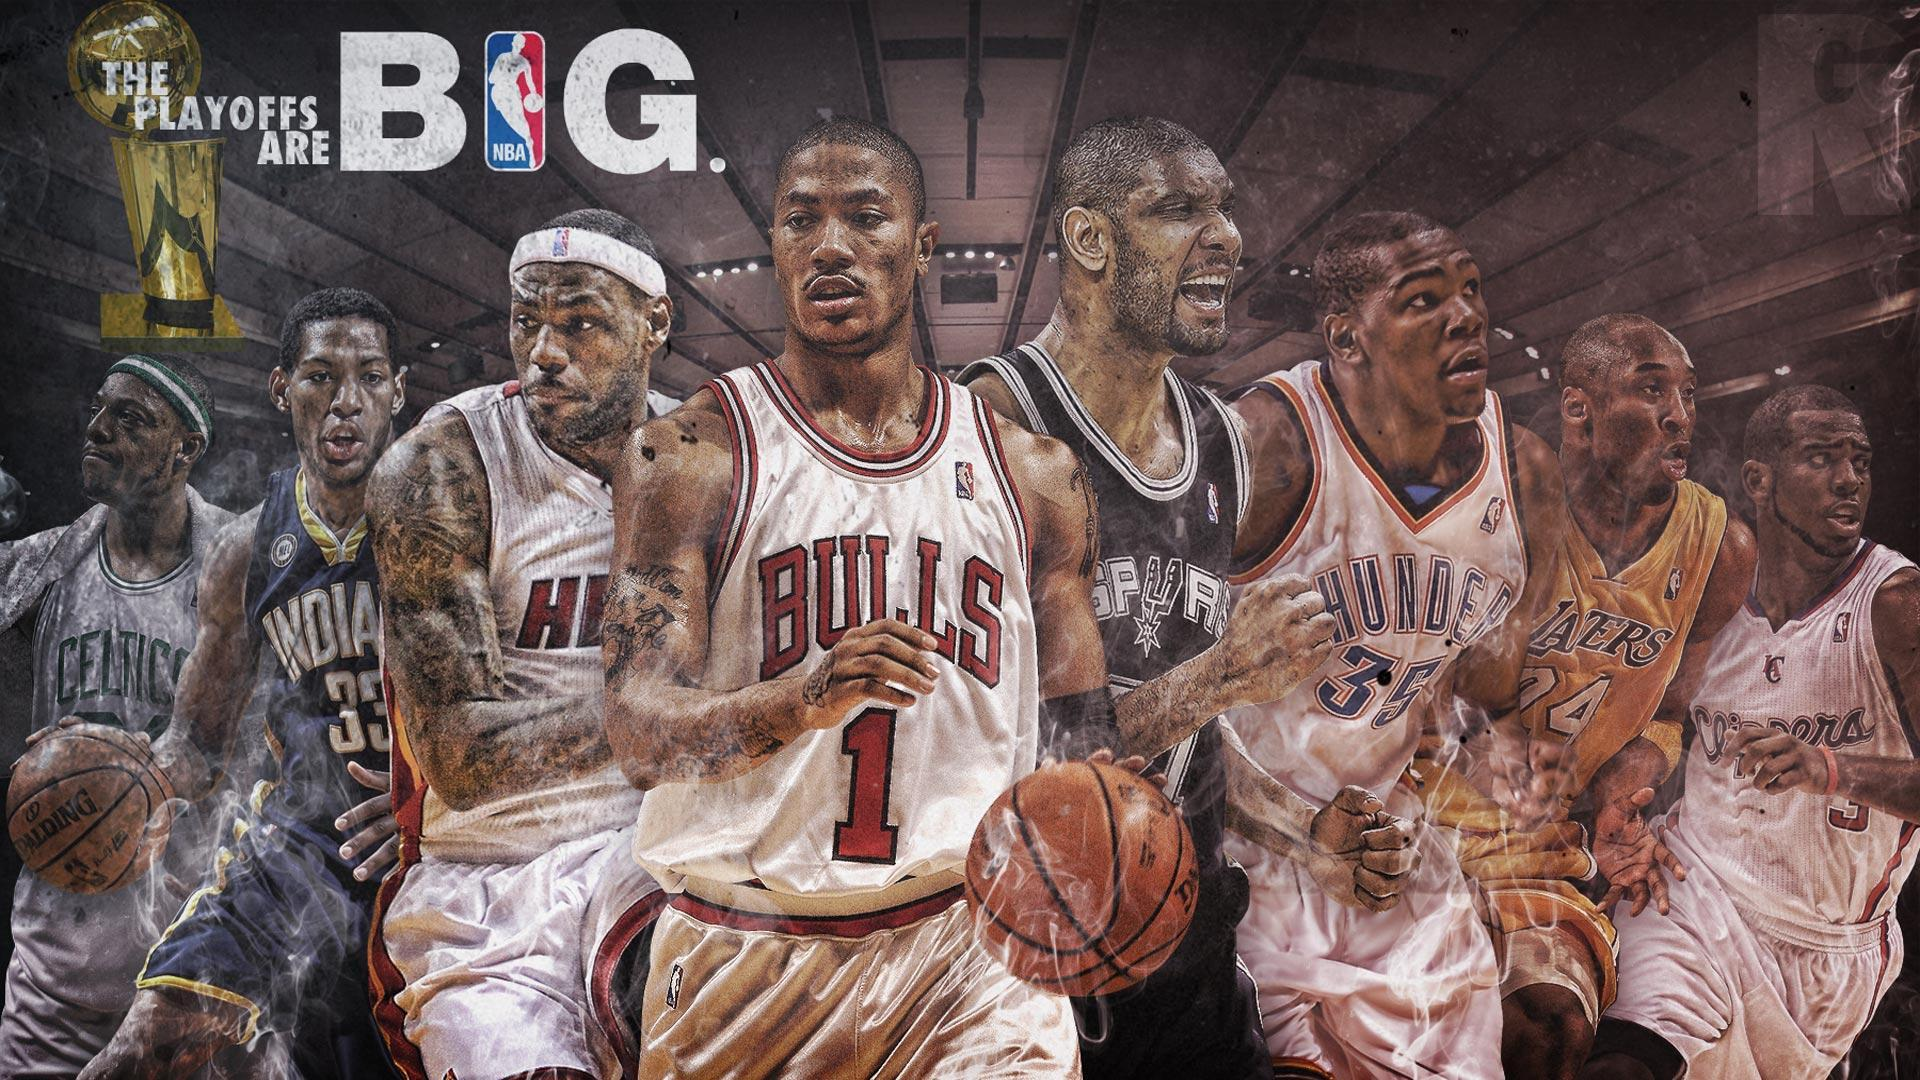 NBA Backgrounds free | HD Wallpapers, Backgrounds, Images, Art Photos.